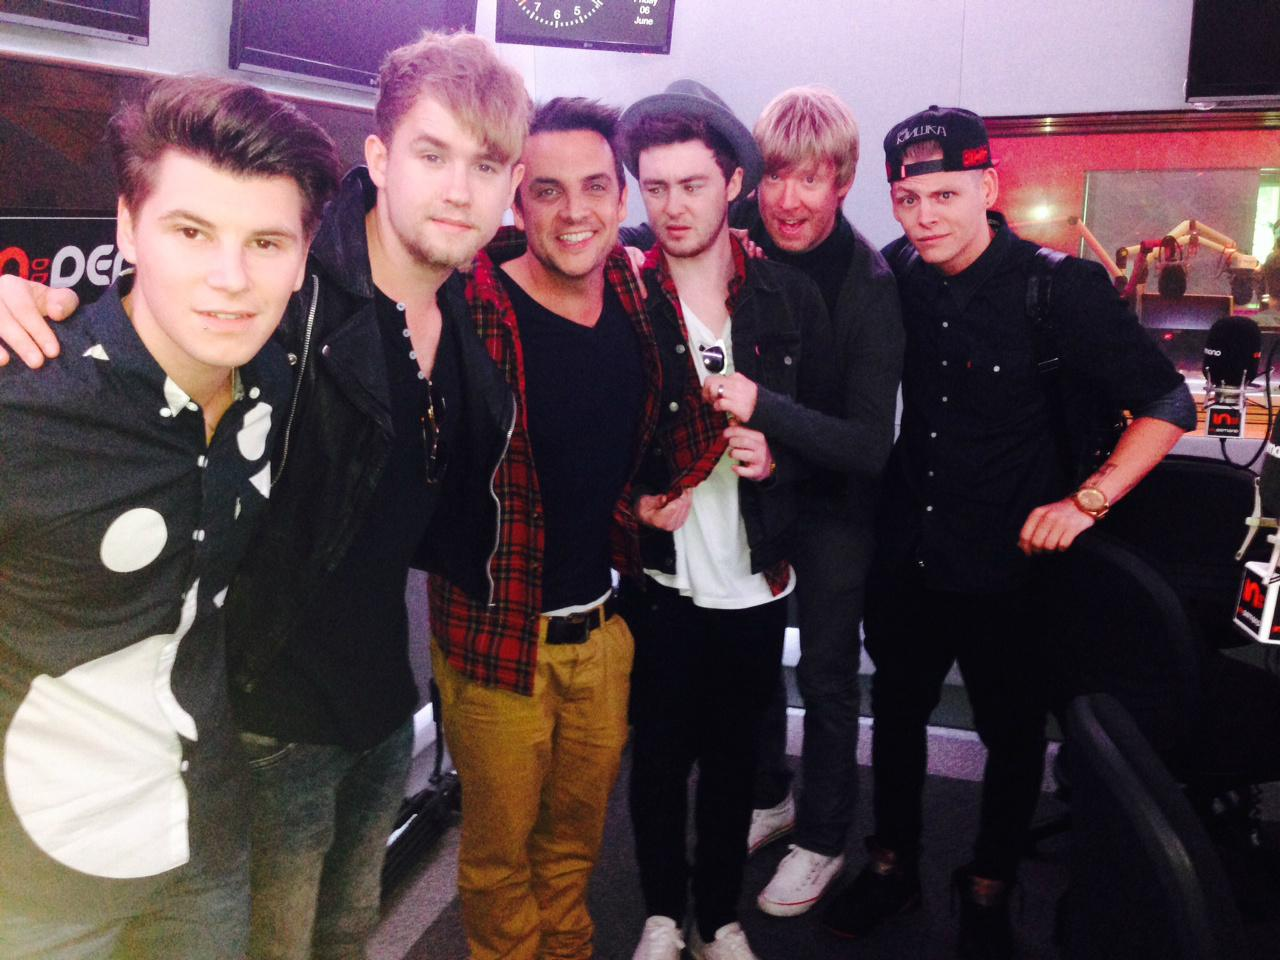 RT @KEY103: M&C: Morning! @RixtonOfficial are live from 8:30am hopefully Mike won't wear the same shirt as Jake again! http://t.co/1TrRUTGz…